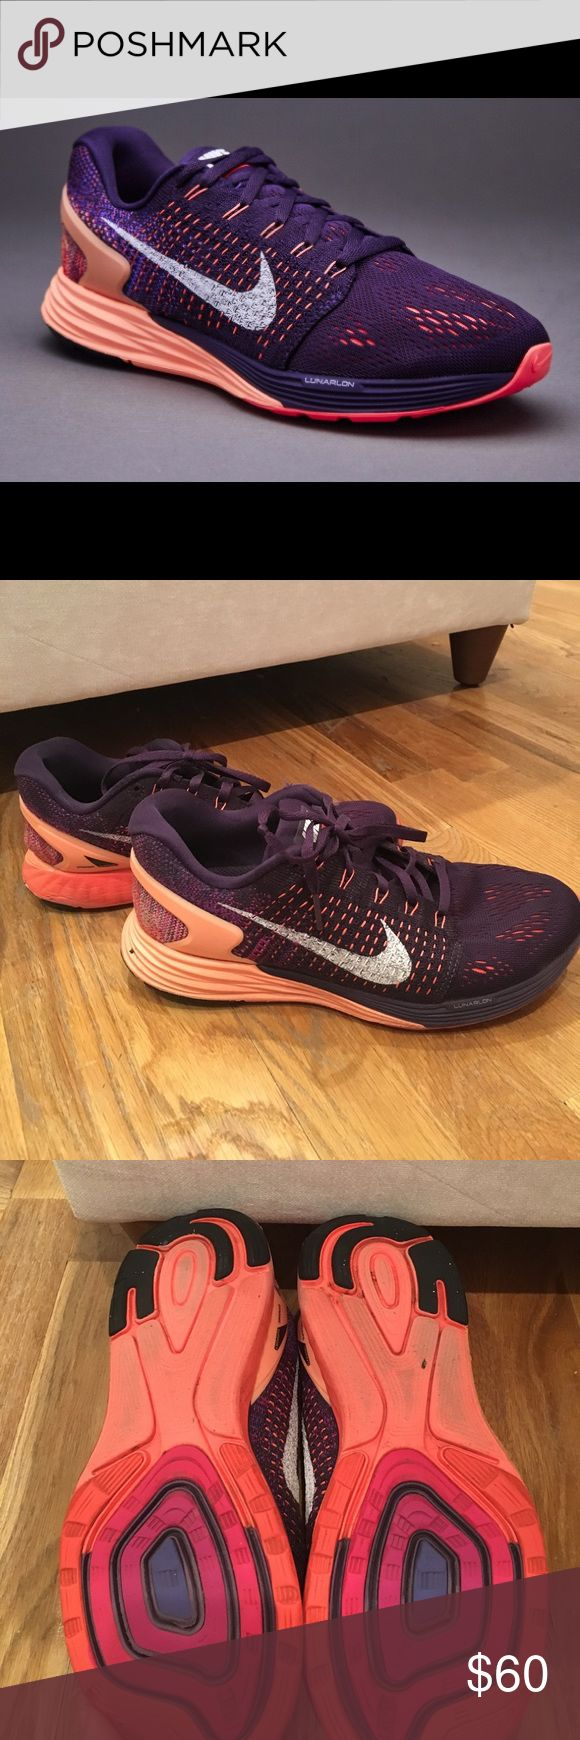 Nike Lunarglide 7 Sneakers Gently used women's lunar glide 7 purple and orange sneakers. Perfect fit for running and working out. Very comfortable. A lot of use still left in them! Nike Shoes Sneakers